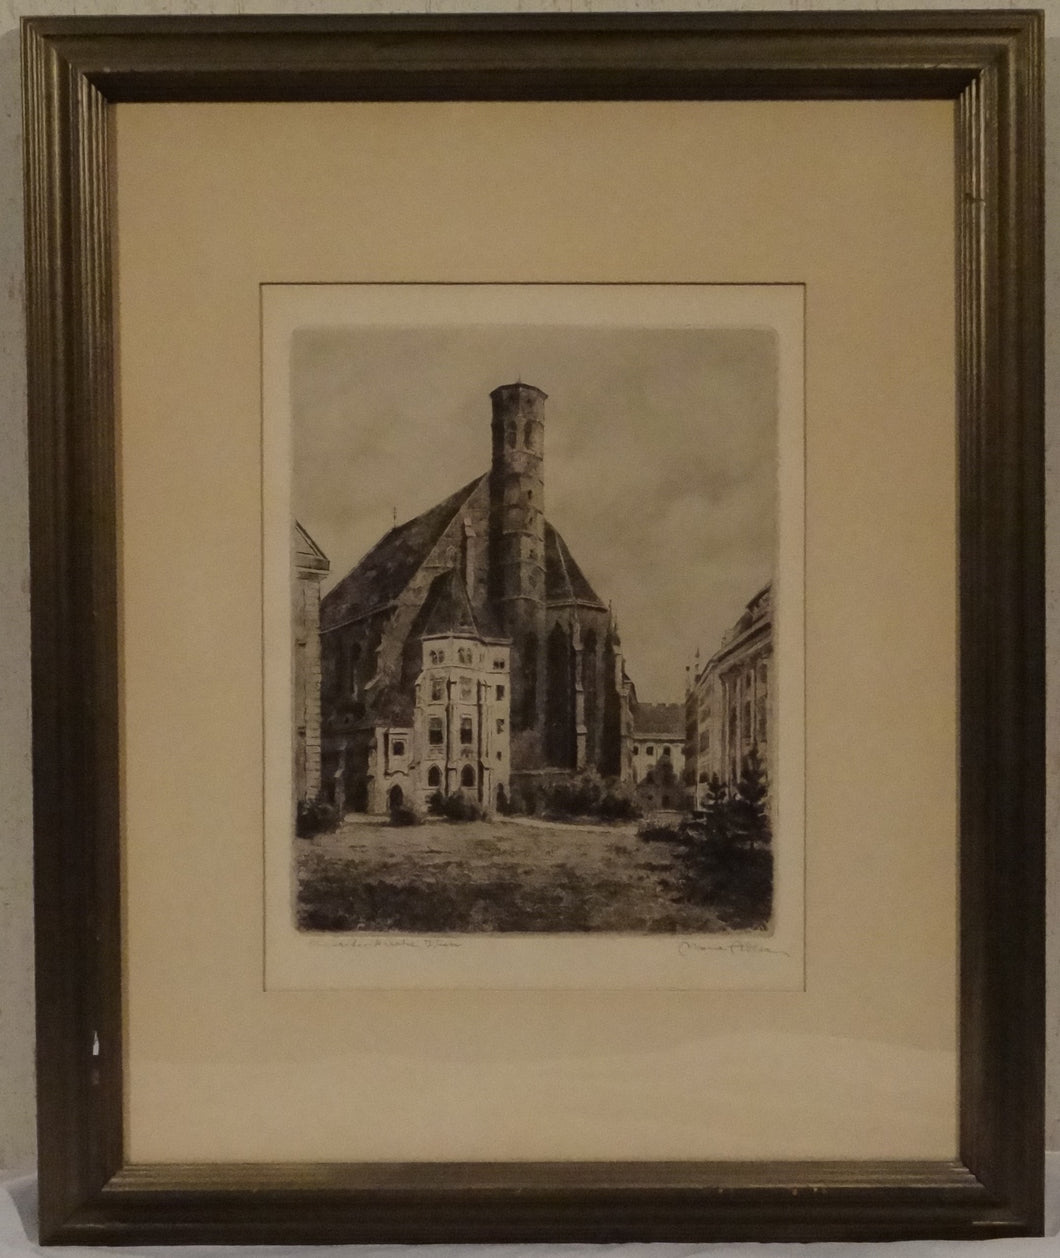 FRAMED ETCHING OF A CHURCH BY VIENNA LISTED ARTIST MARIE ADLER SIGNED - Gallery Antiques